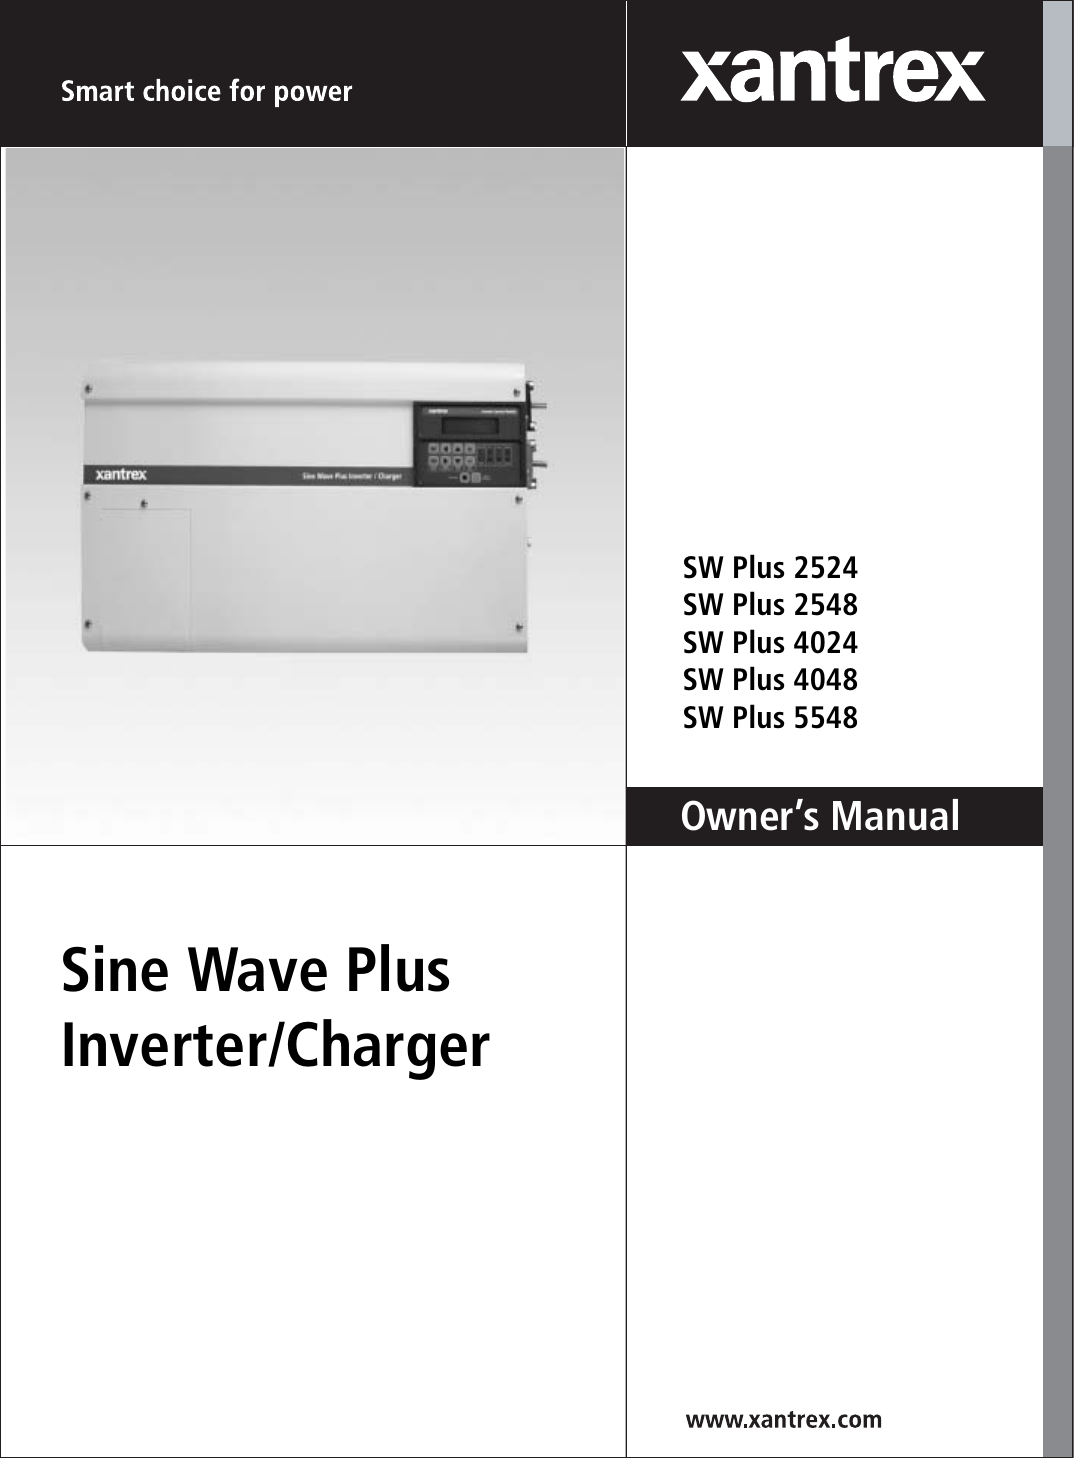 Xantrex Sw Plus 2524 Users Manual 976 0043 01 02 Rev B Sine Wave Circuit 5000 Watt Power Inverter Schematic Grid Tie Micro Gel